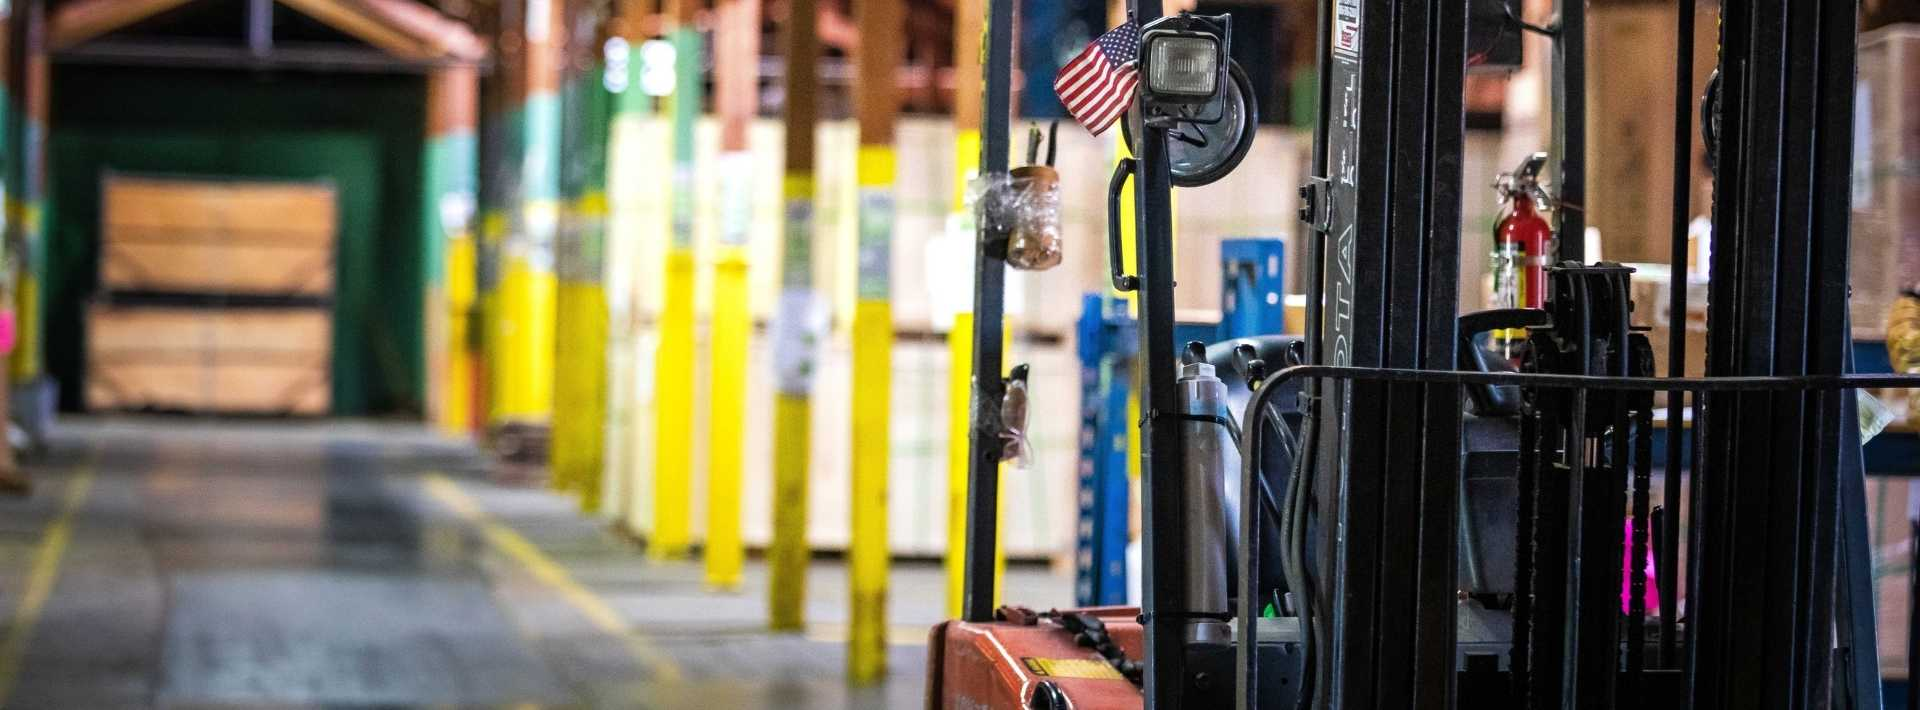 A forklift with small American flag sits in Ventamatic's bath fan warehouse in Mineral Wells, Texas.